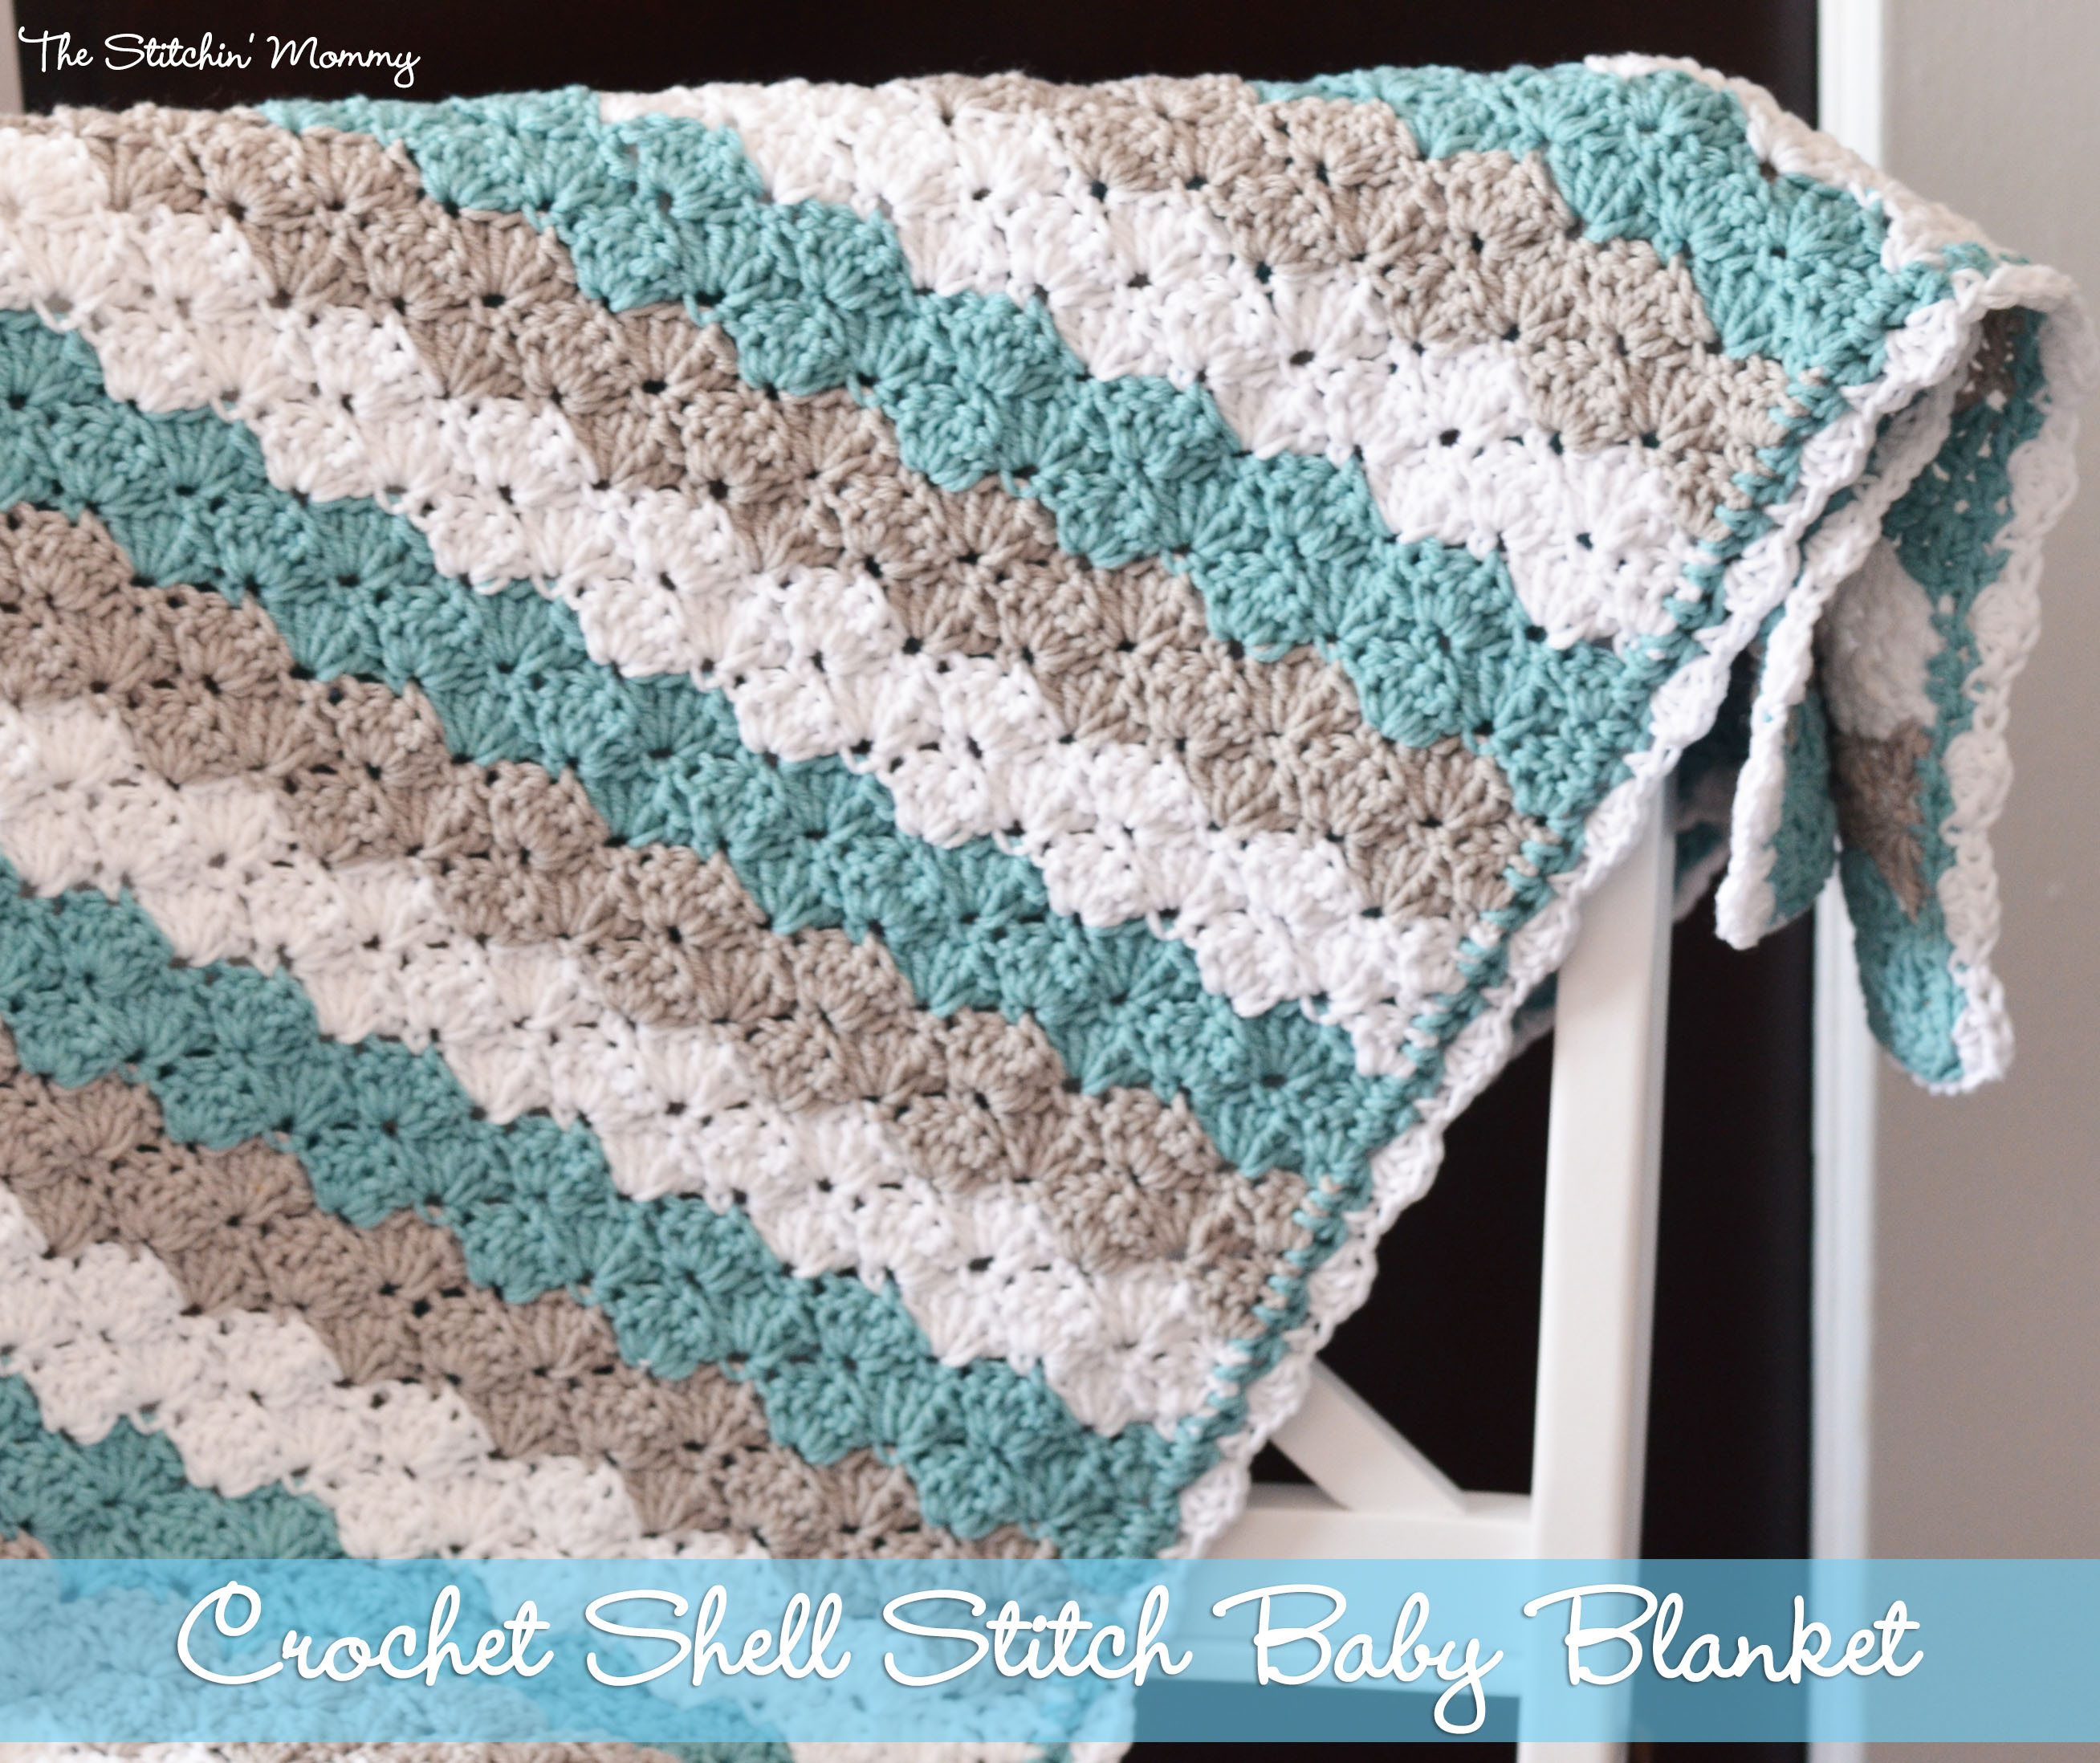 Easy Baby Blanket Patterns Awesome Easy Baby Boy Crochet Blanket Patterns Crochet and Knit Of Superb 48 Ideas Easy Baby Blanket Patterns